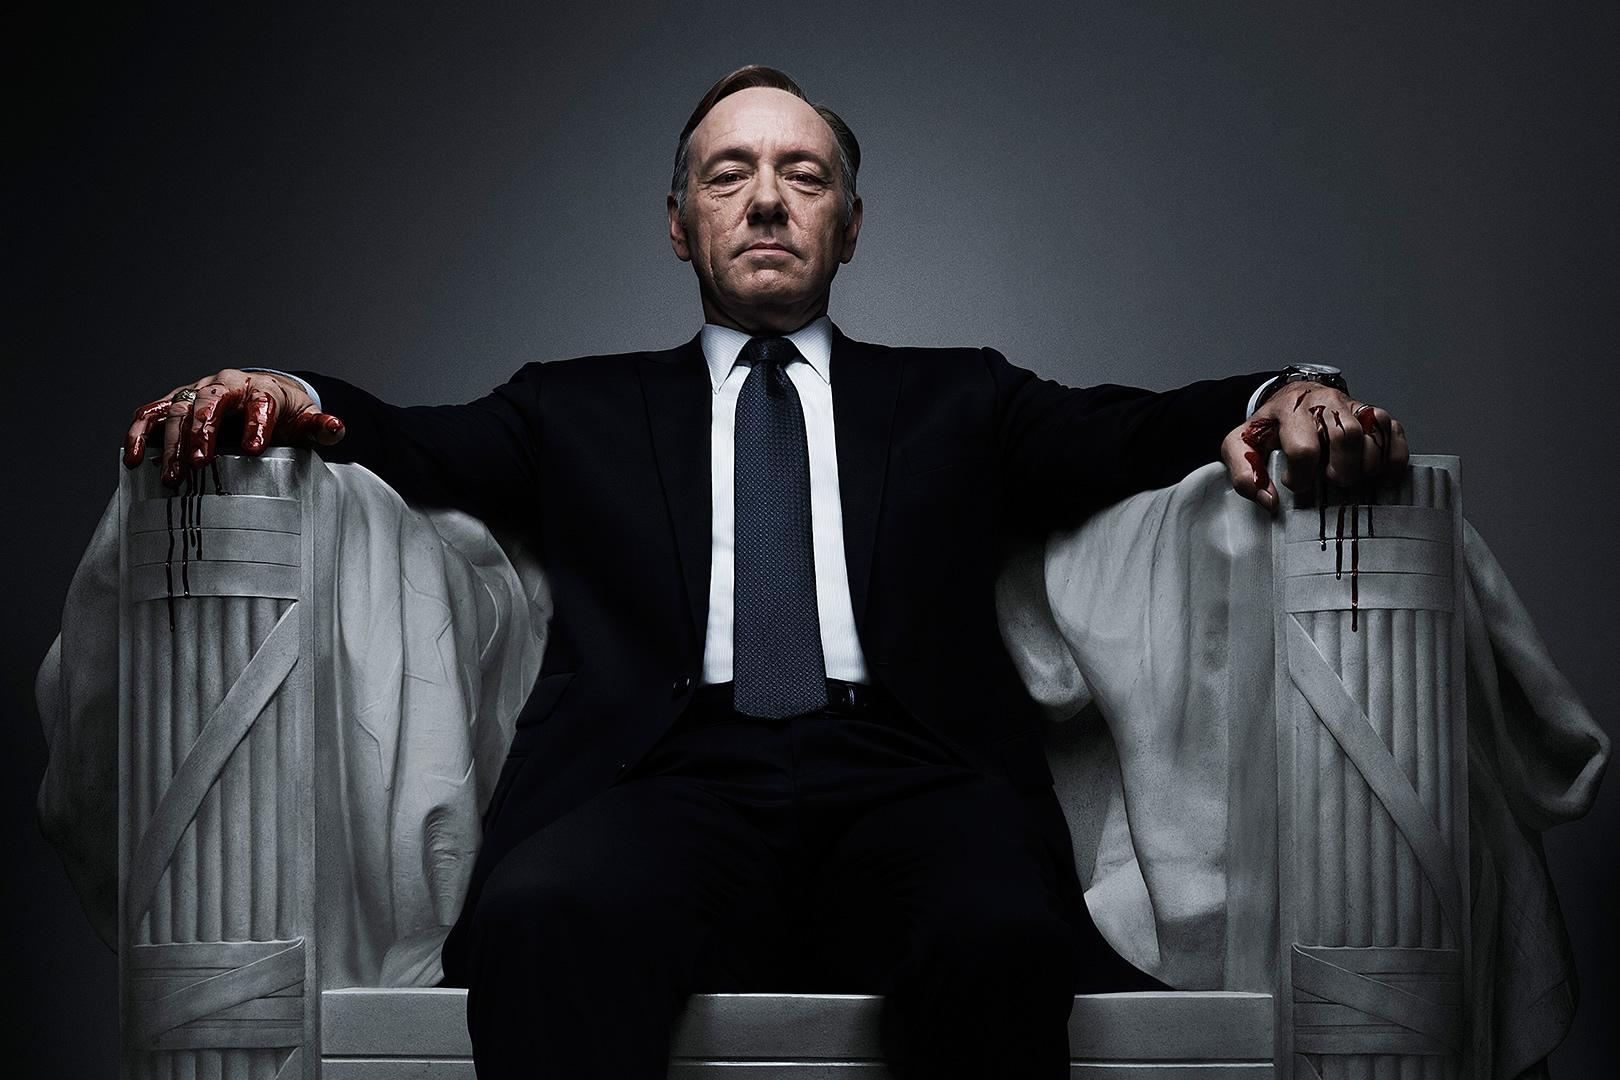 Presencing and the House of Cards